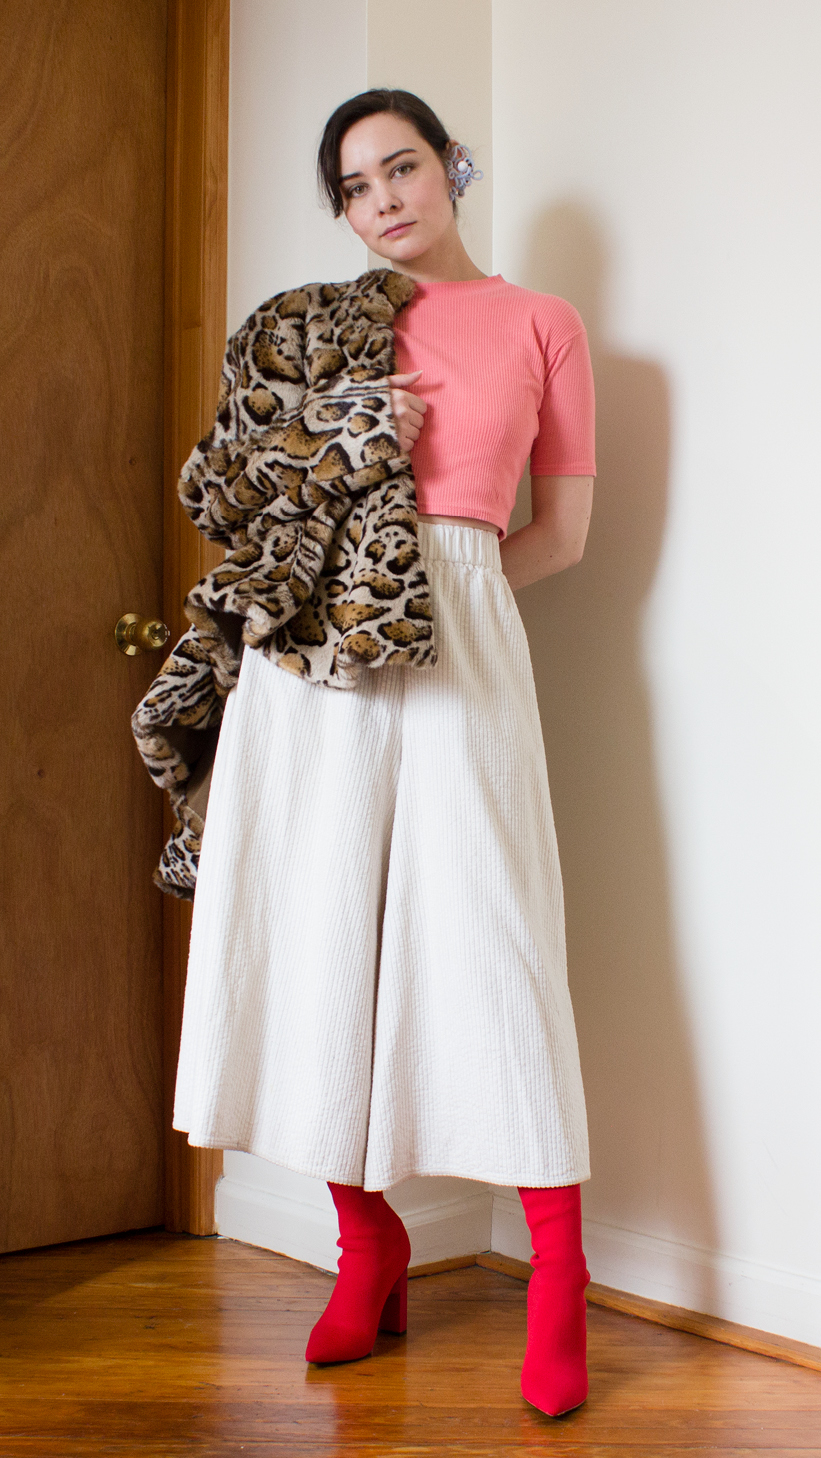 Asymmetric faux fur jacket, white wide leg pants, red sock shoes and pink short sleeve top